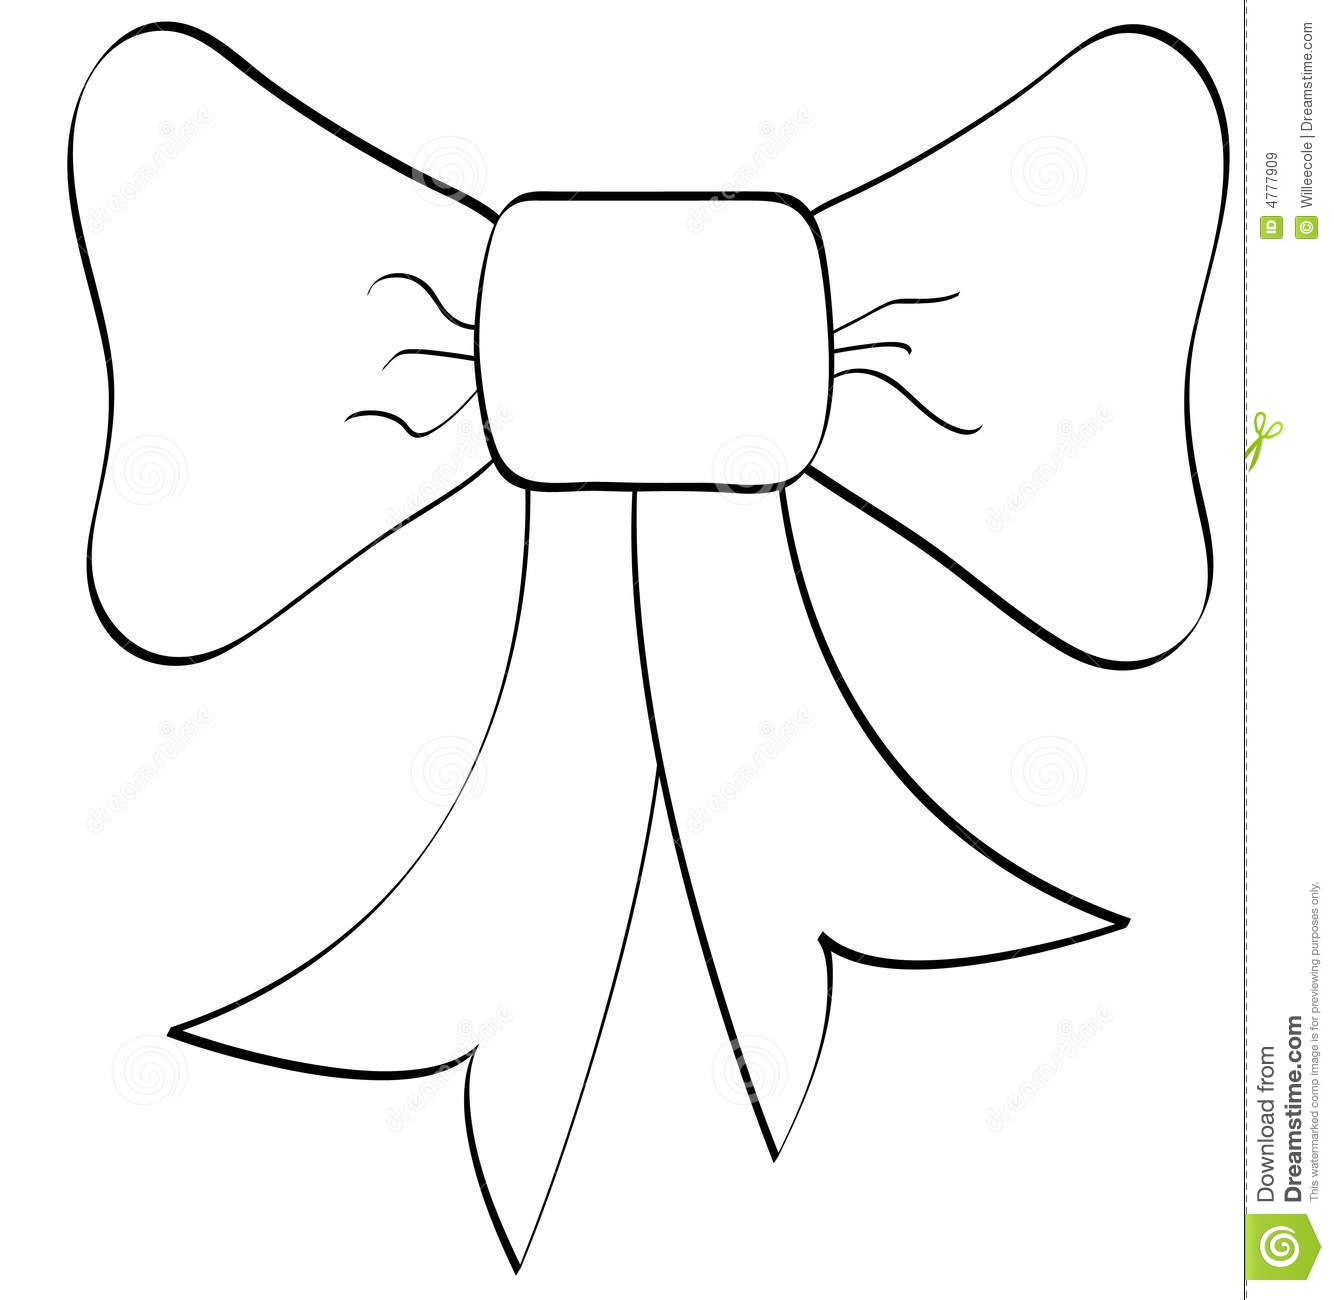 Bow Outline Royalty Free Stock Images